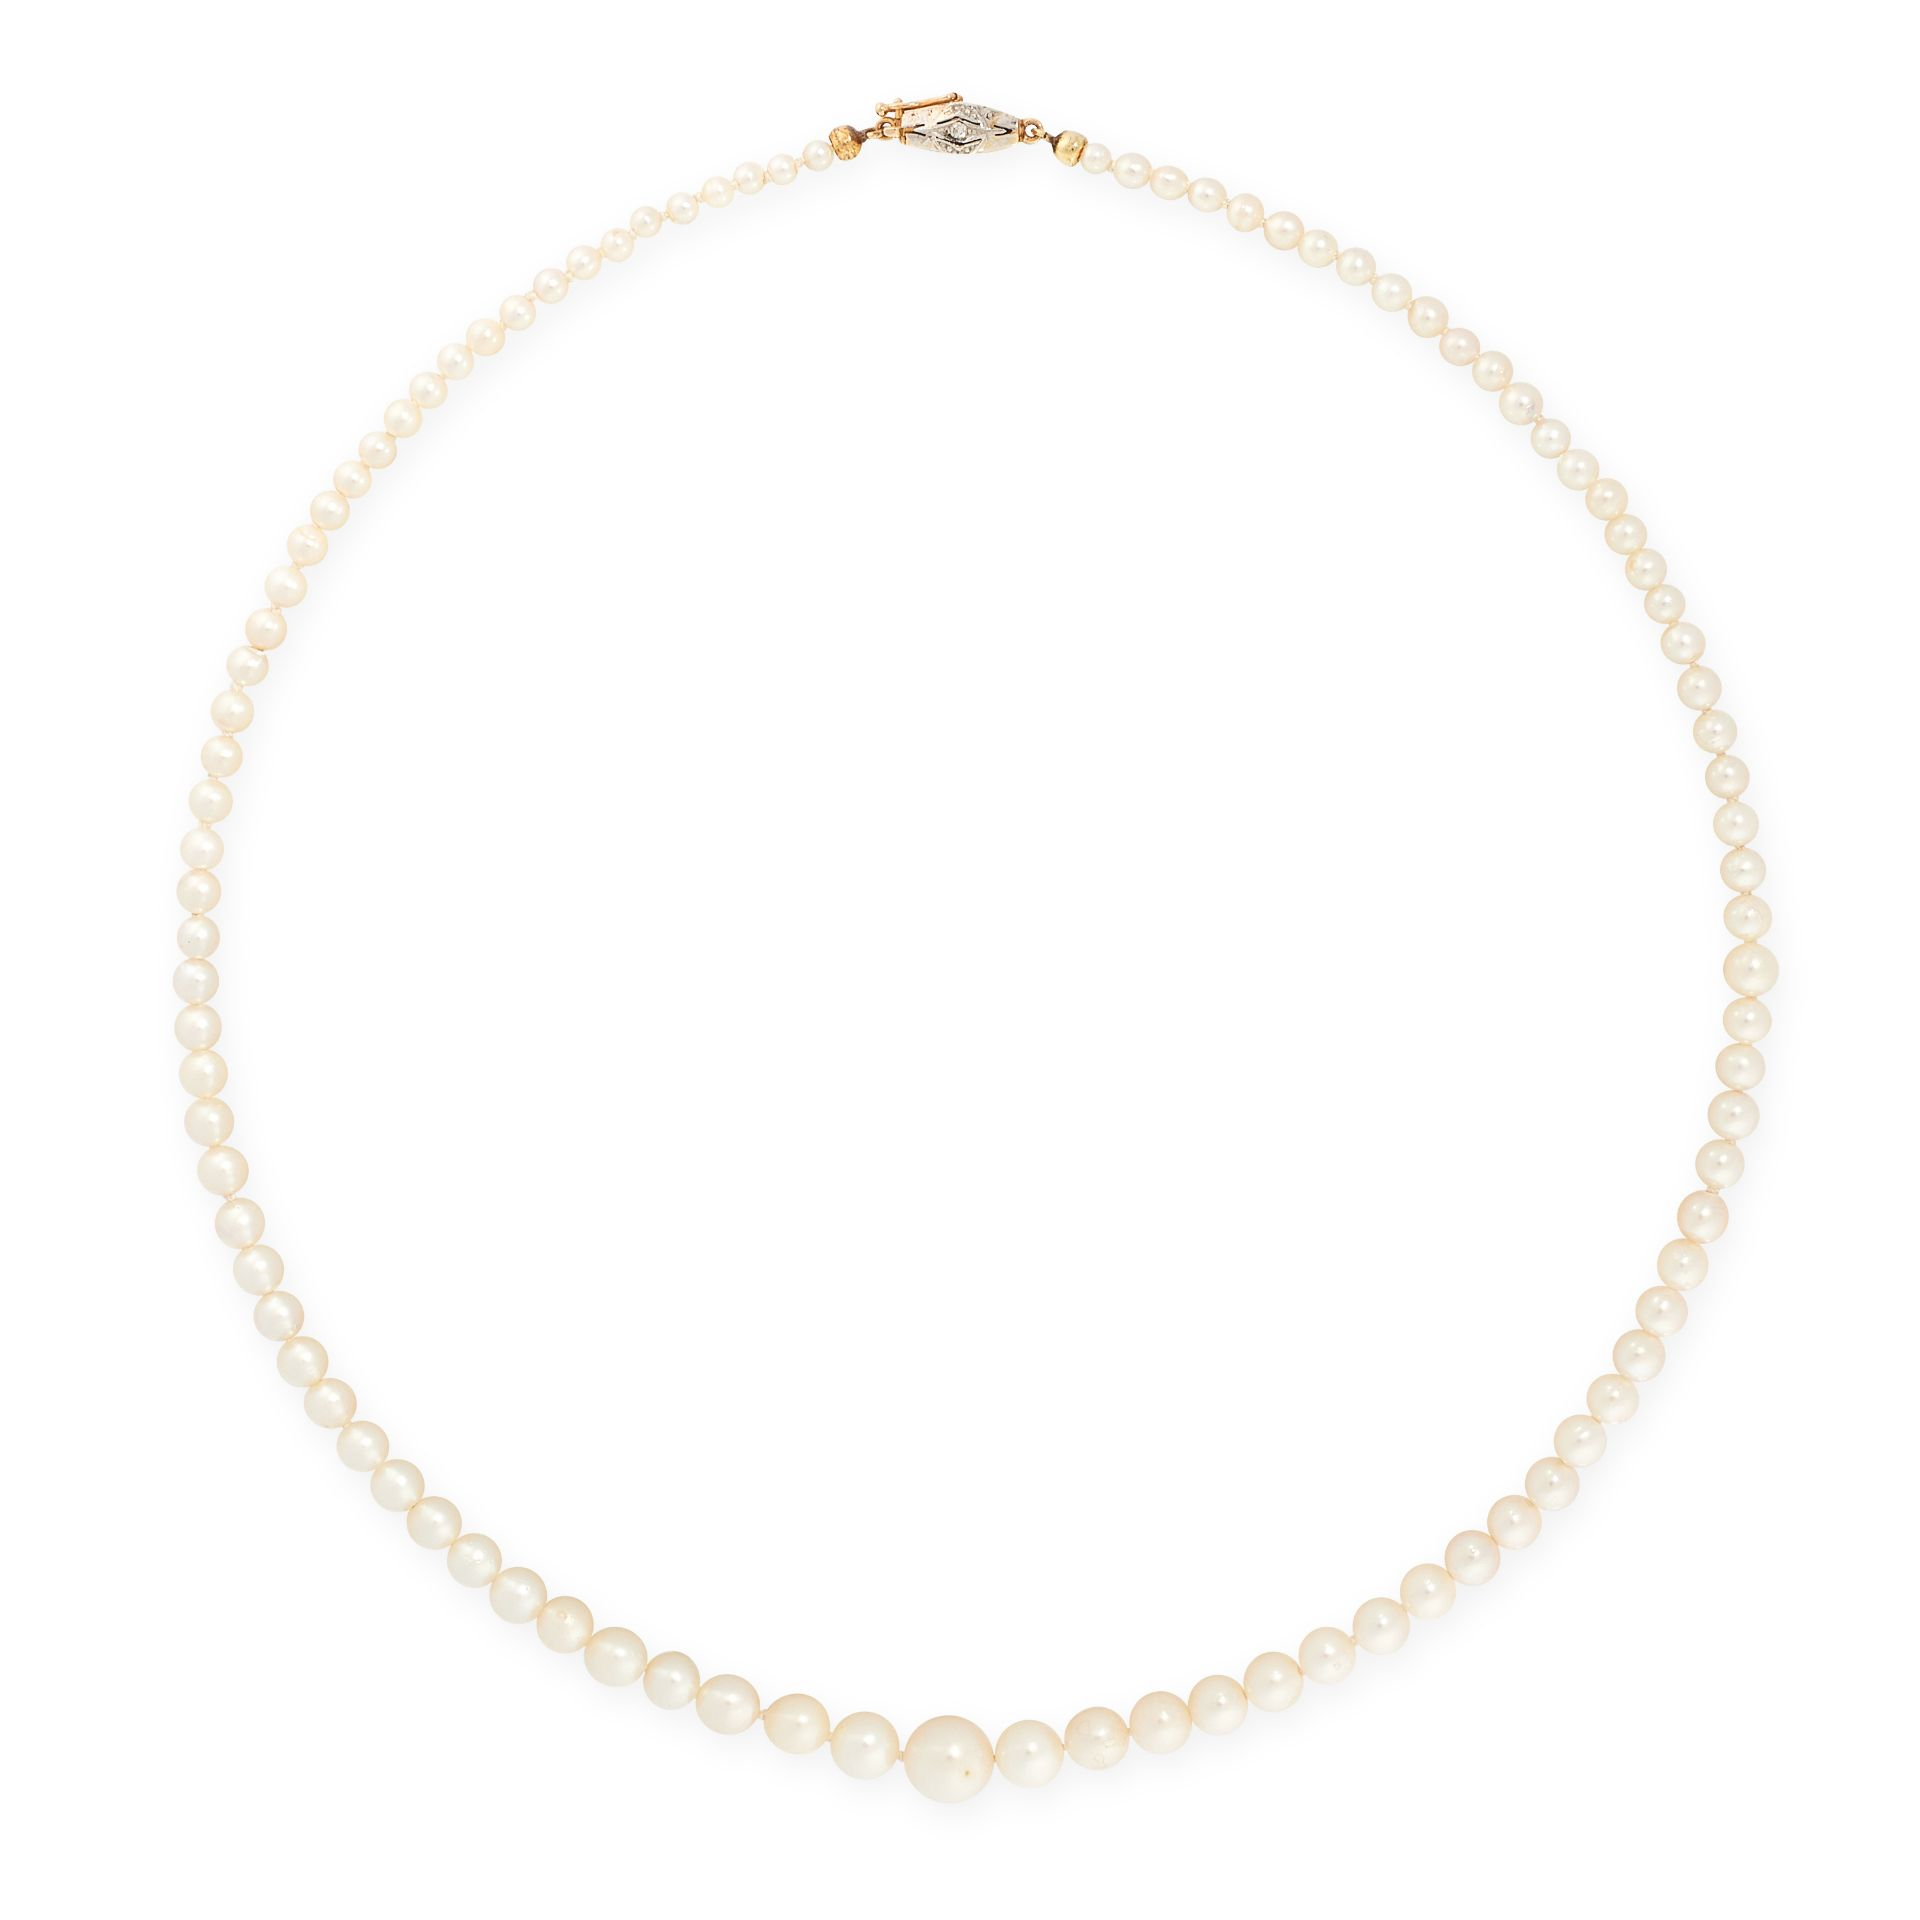 A PEARL AND DIAMOND NECKLACE, 1948 in 18ct yellow gold, comprising a single row of ninety-seven